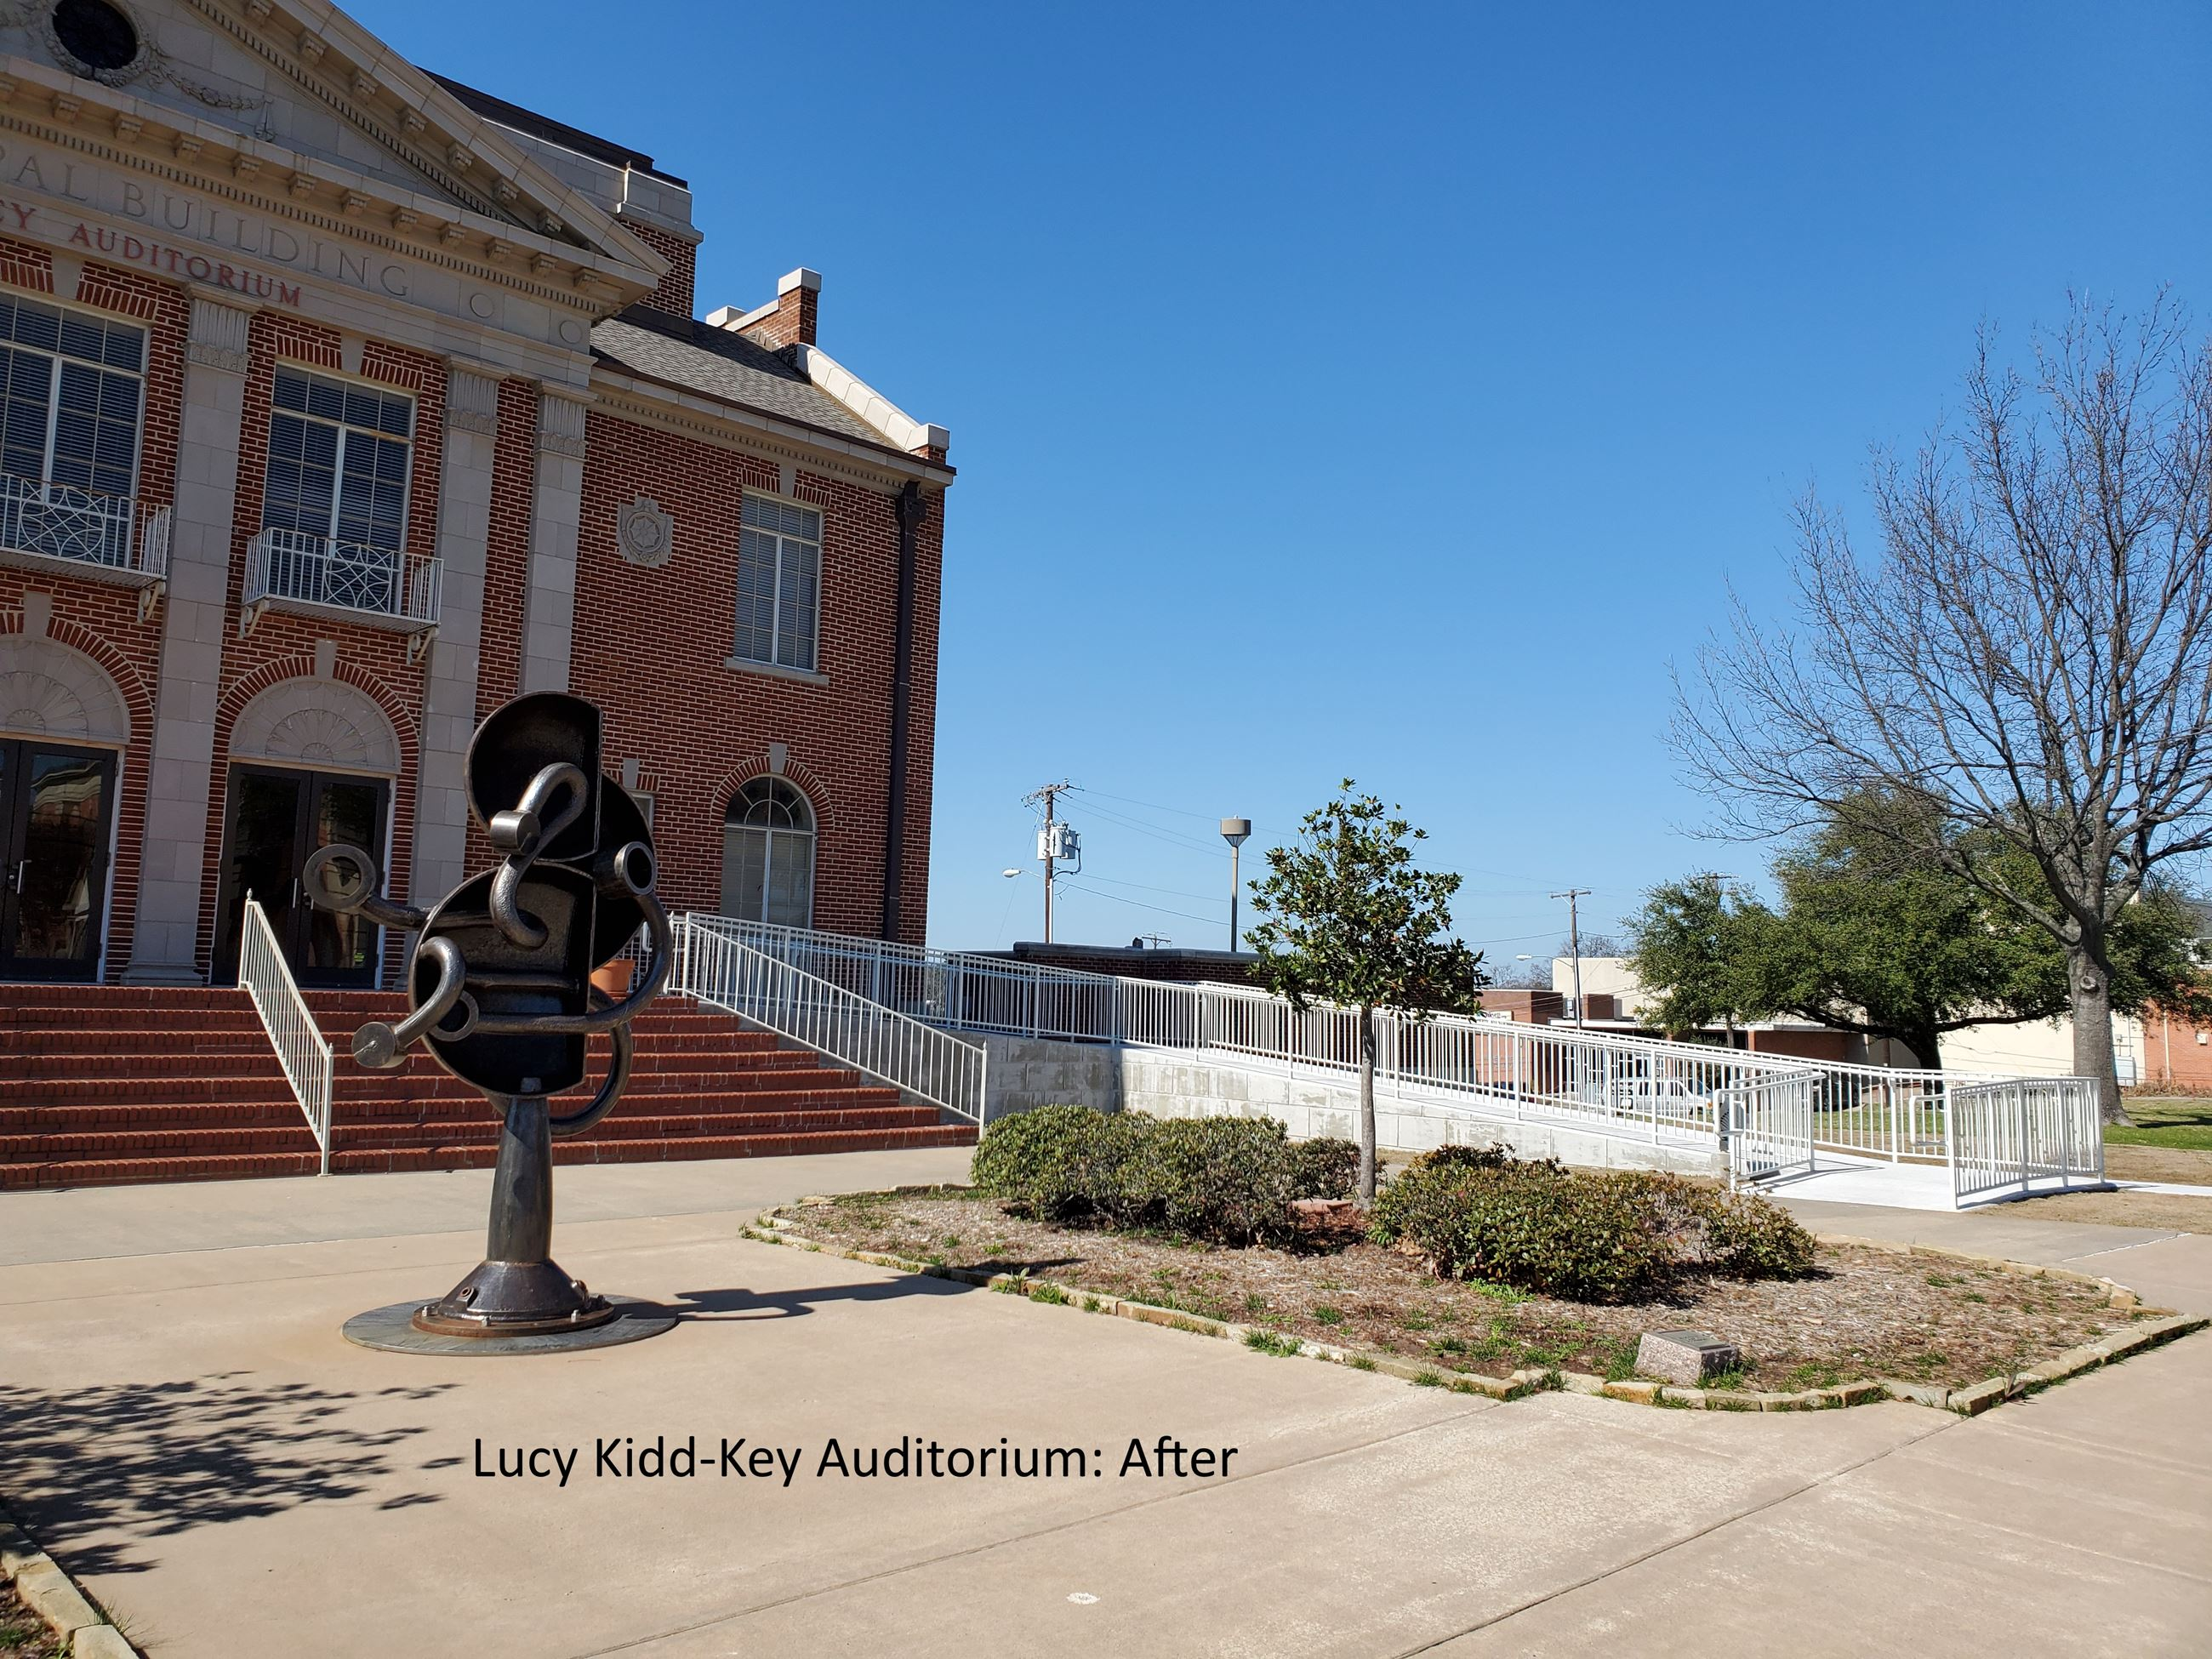 Kidd-Key Auditorium: After